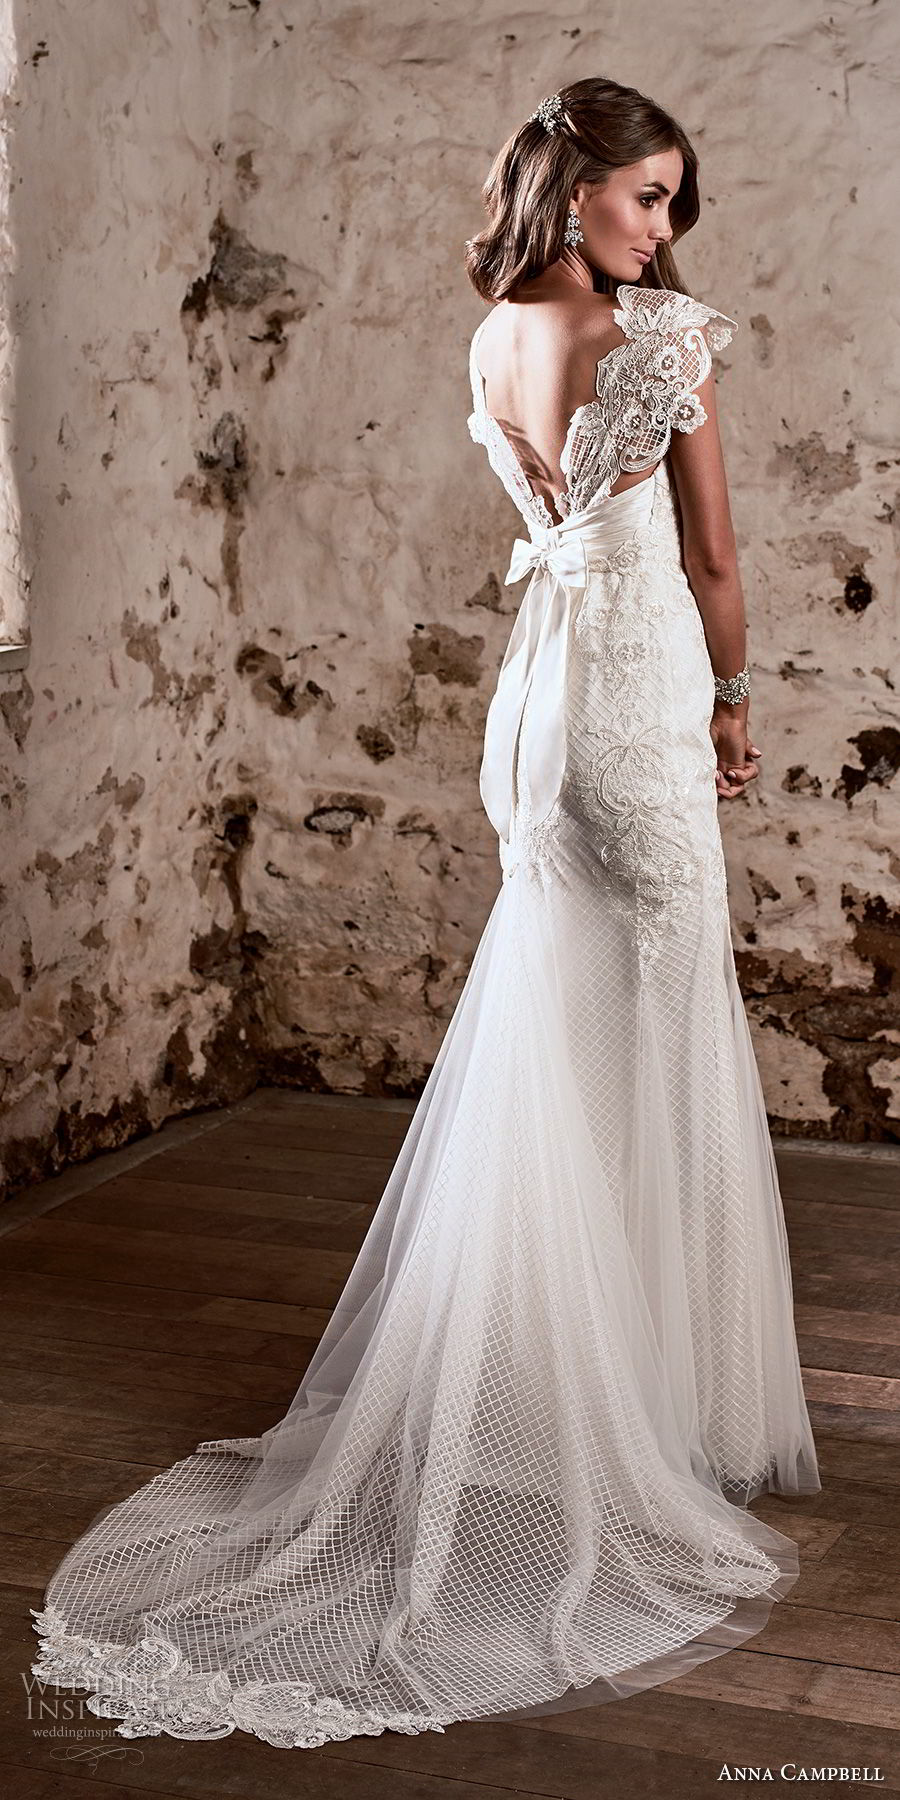 anna campbell 2018 bridal cap sleeves sweetheart neckline heavily embellished bodice romantic fit and flare wedding dress open v back sweep train (4) bv